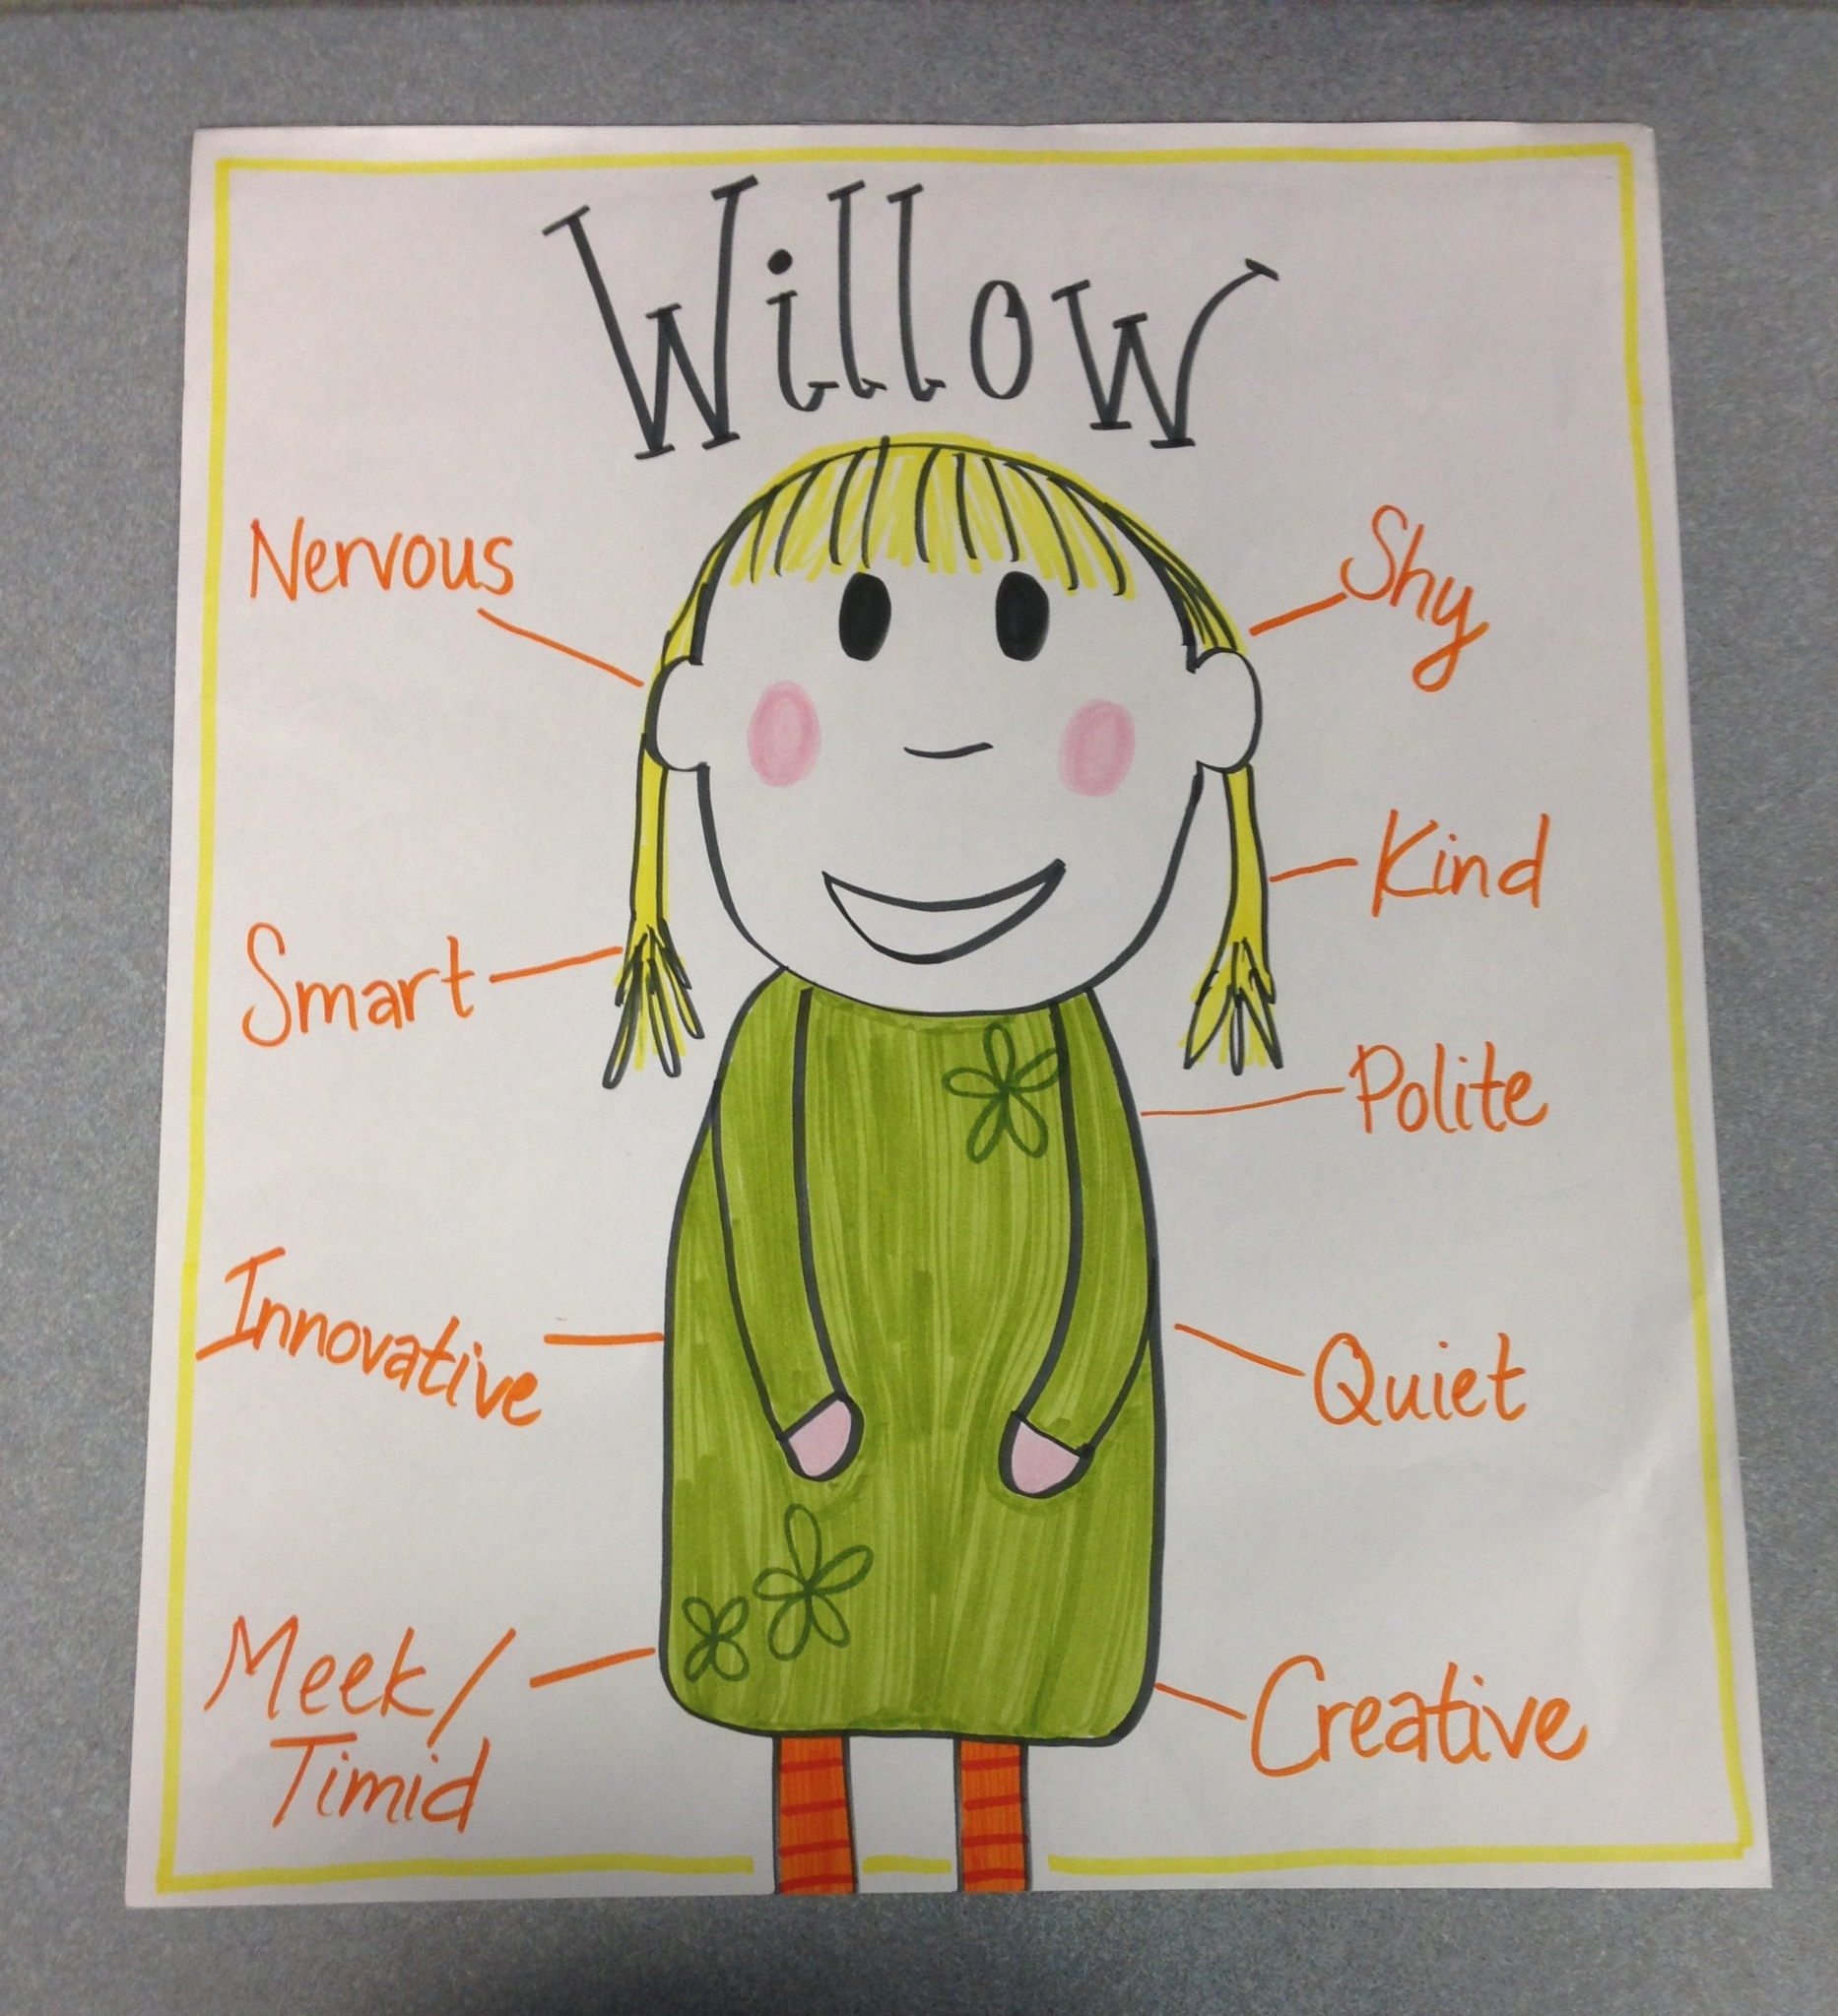 Character Map of Willow